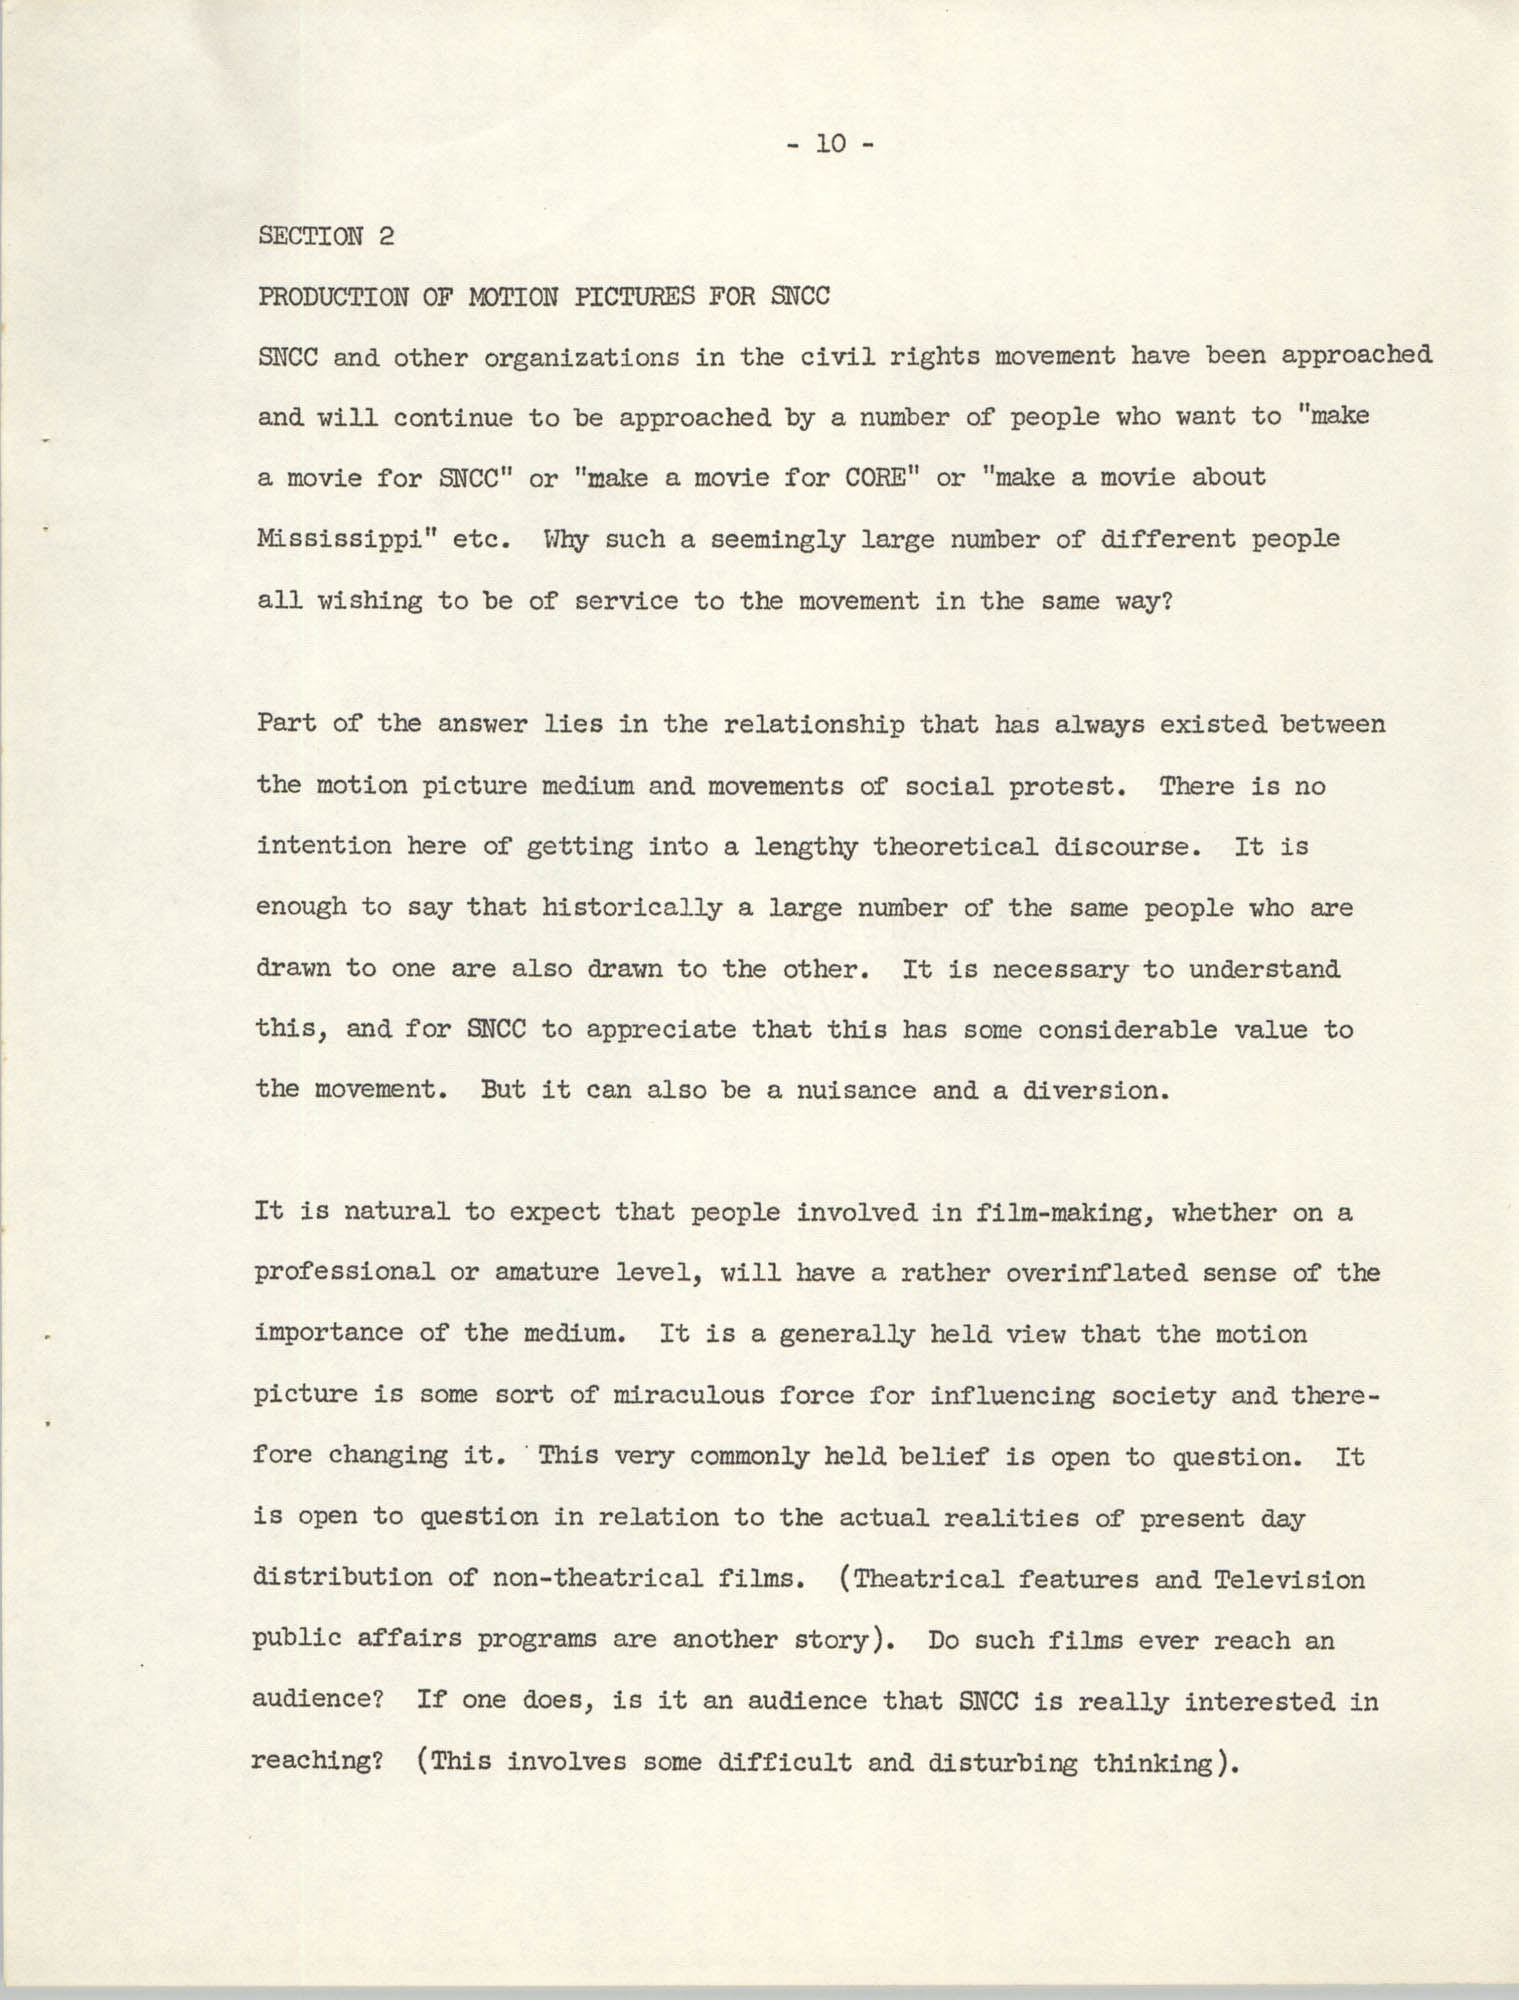 The SNCC Motion Picture Project: A Progress Report and Program Outline, Page 10